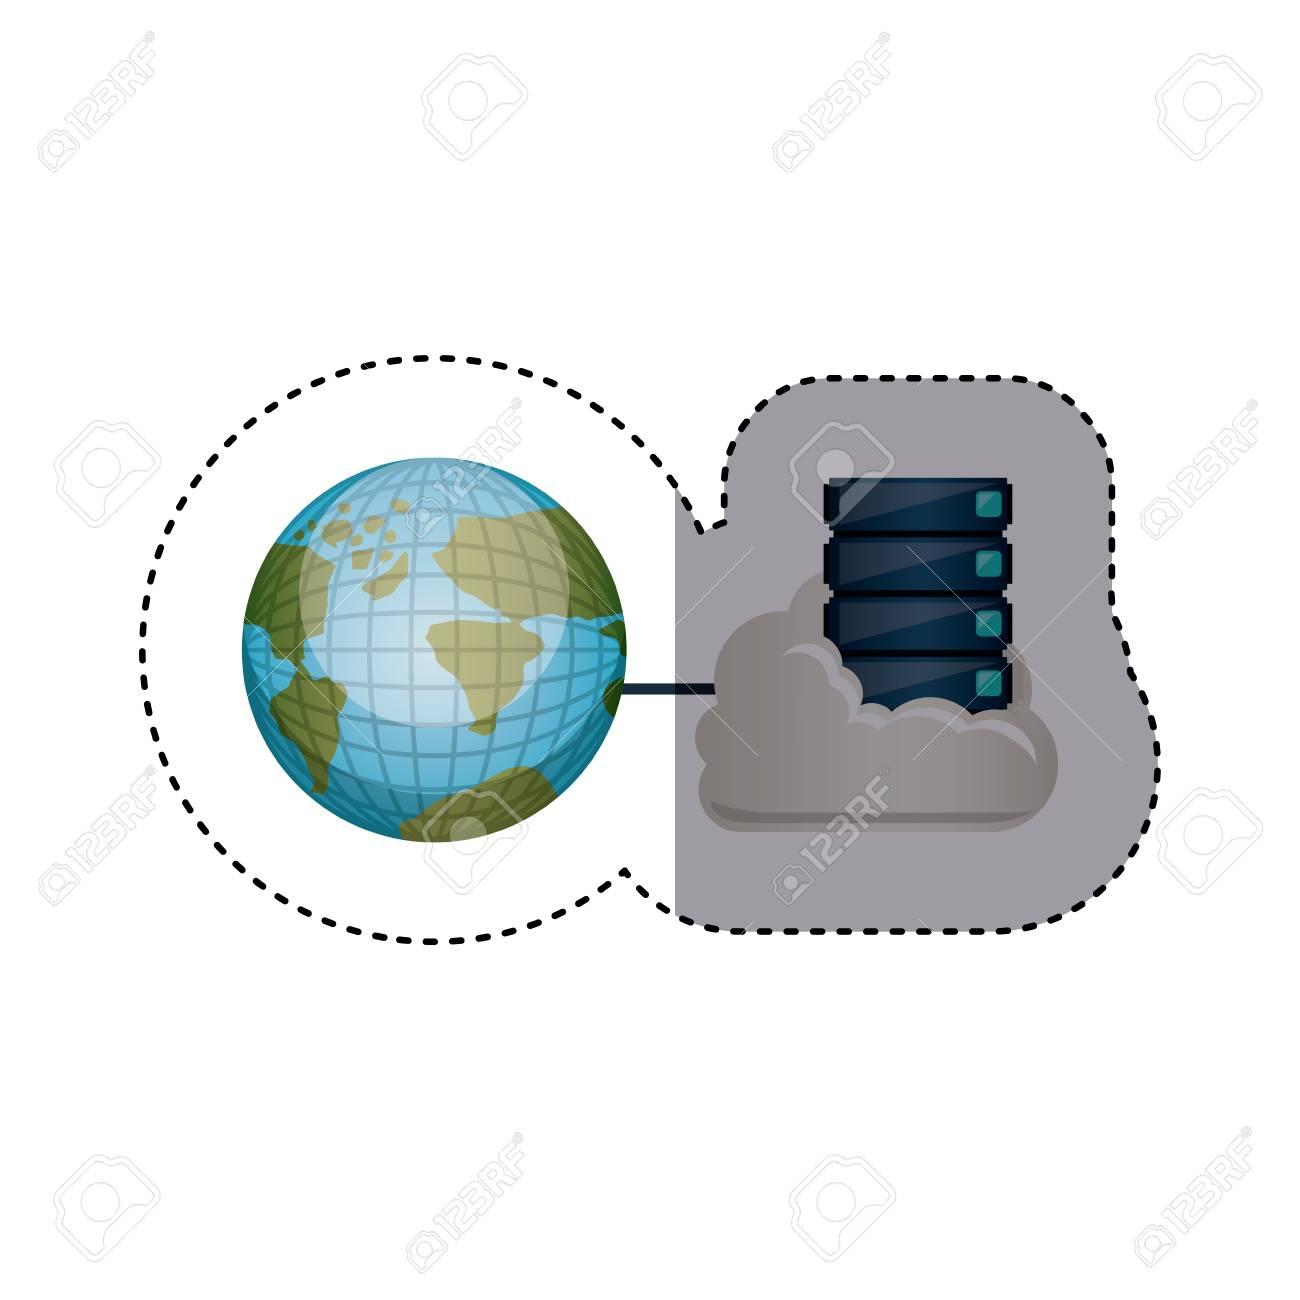 Sticker with file cabinet into the cloud and earth world map sticker with file cabinet into the cloud and earth world map vector illustration stock vector gumiabroncs Images